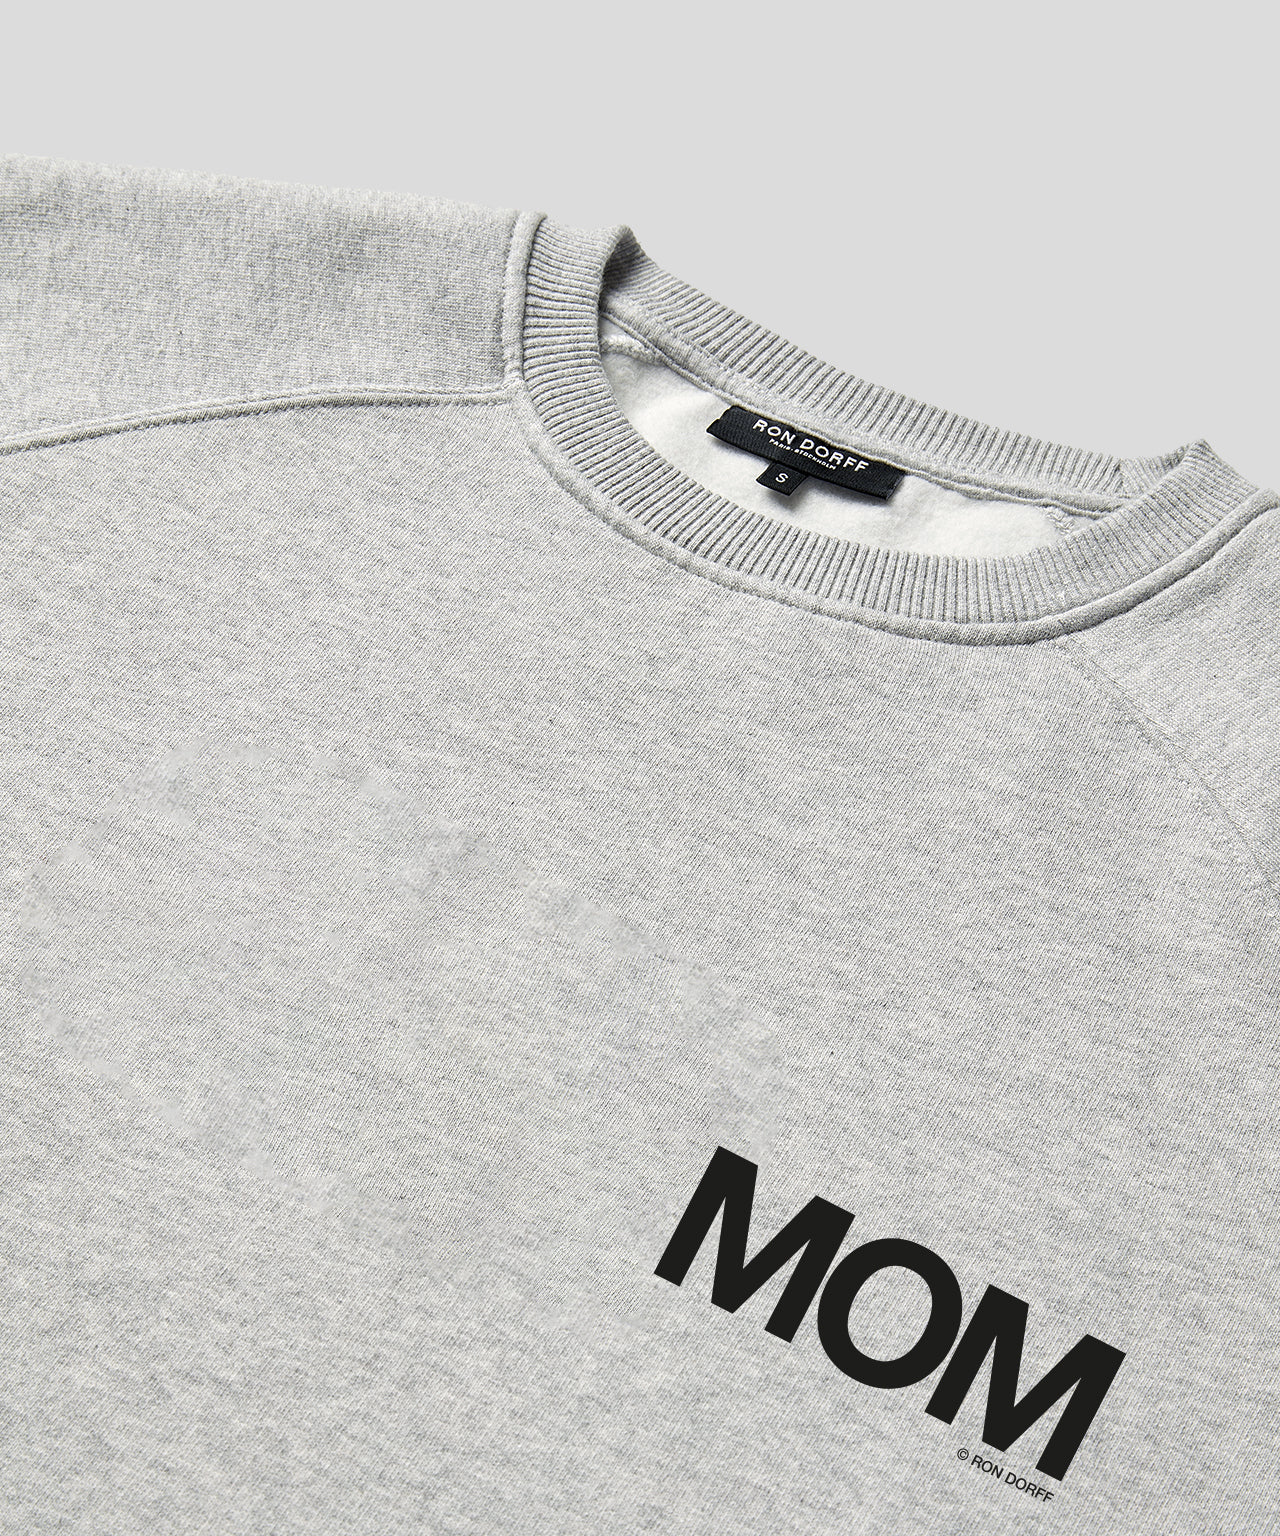 Sweatshirt MOM - grey melange